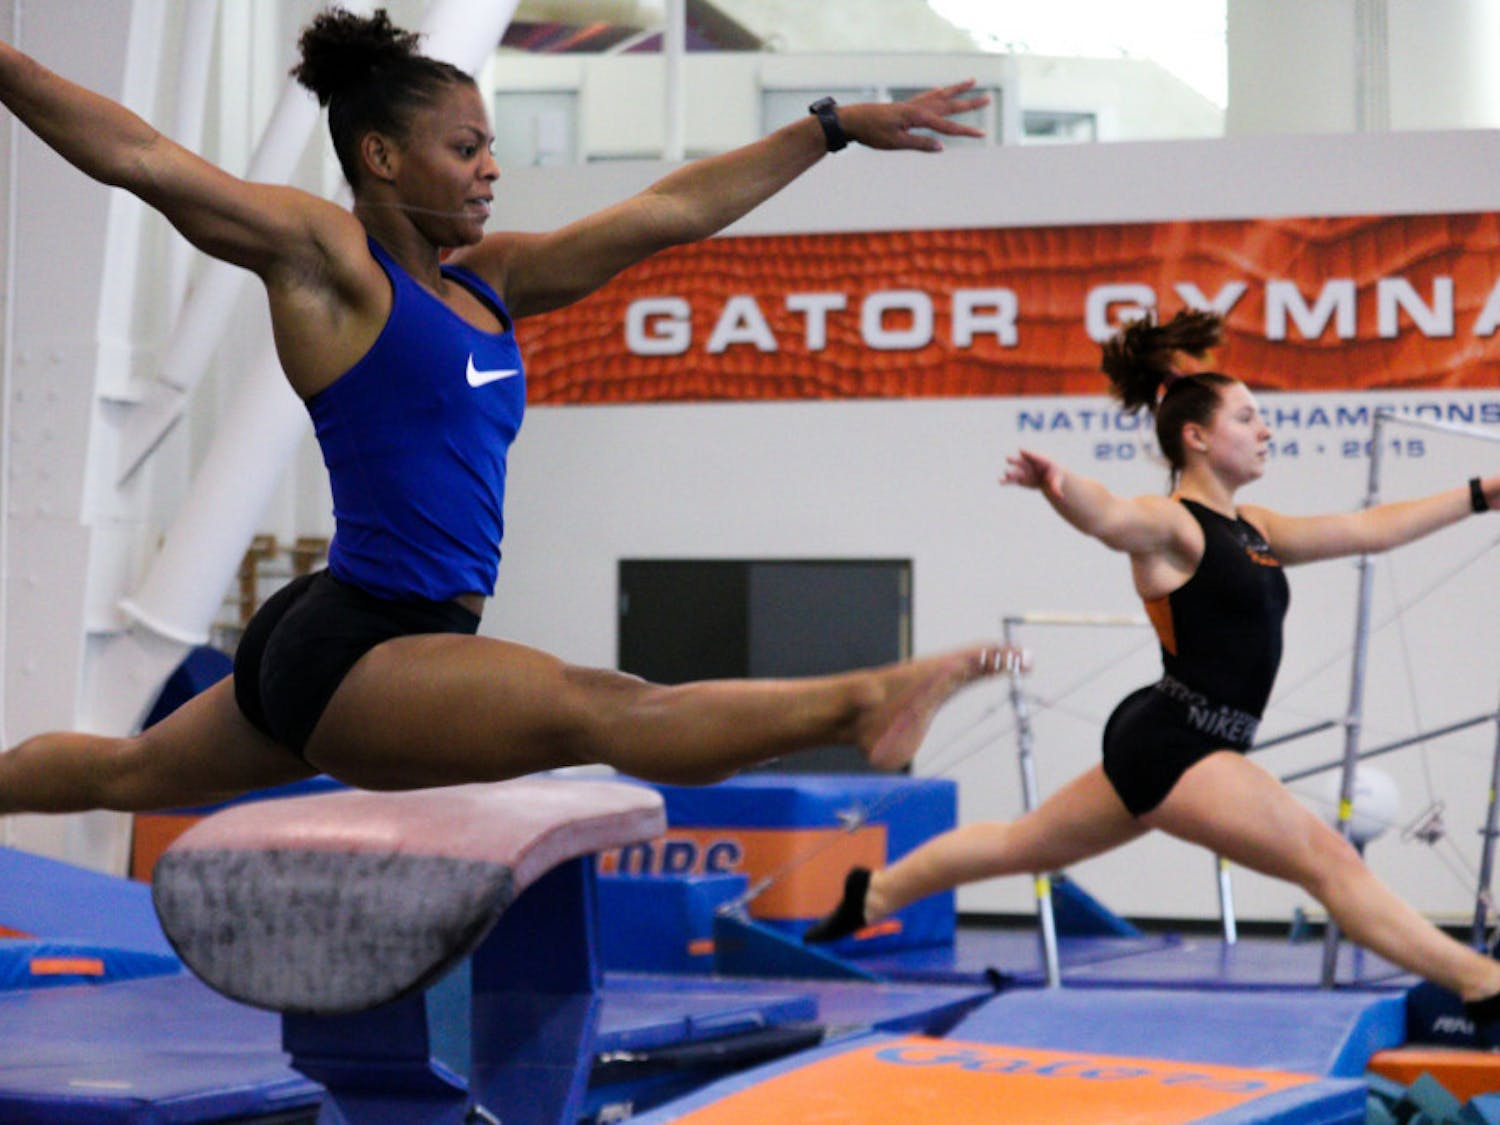 Trinity Thomas scored a perfect 10 on her floor routine, leading Florida to a narrow victory over LSU Friday night